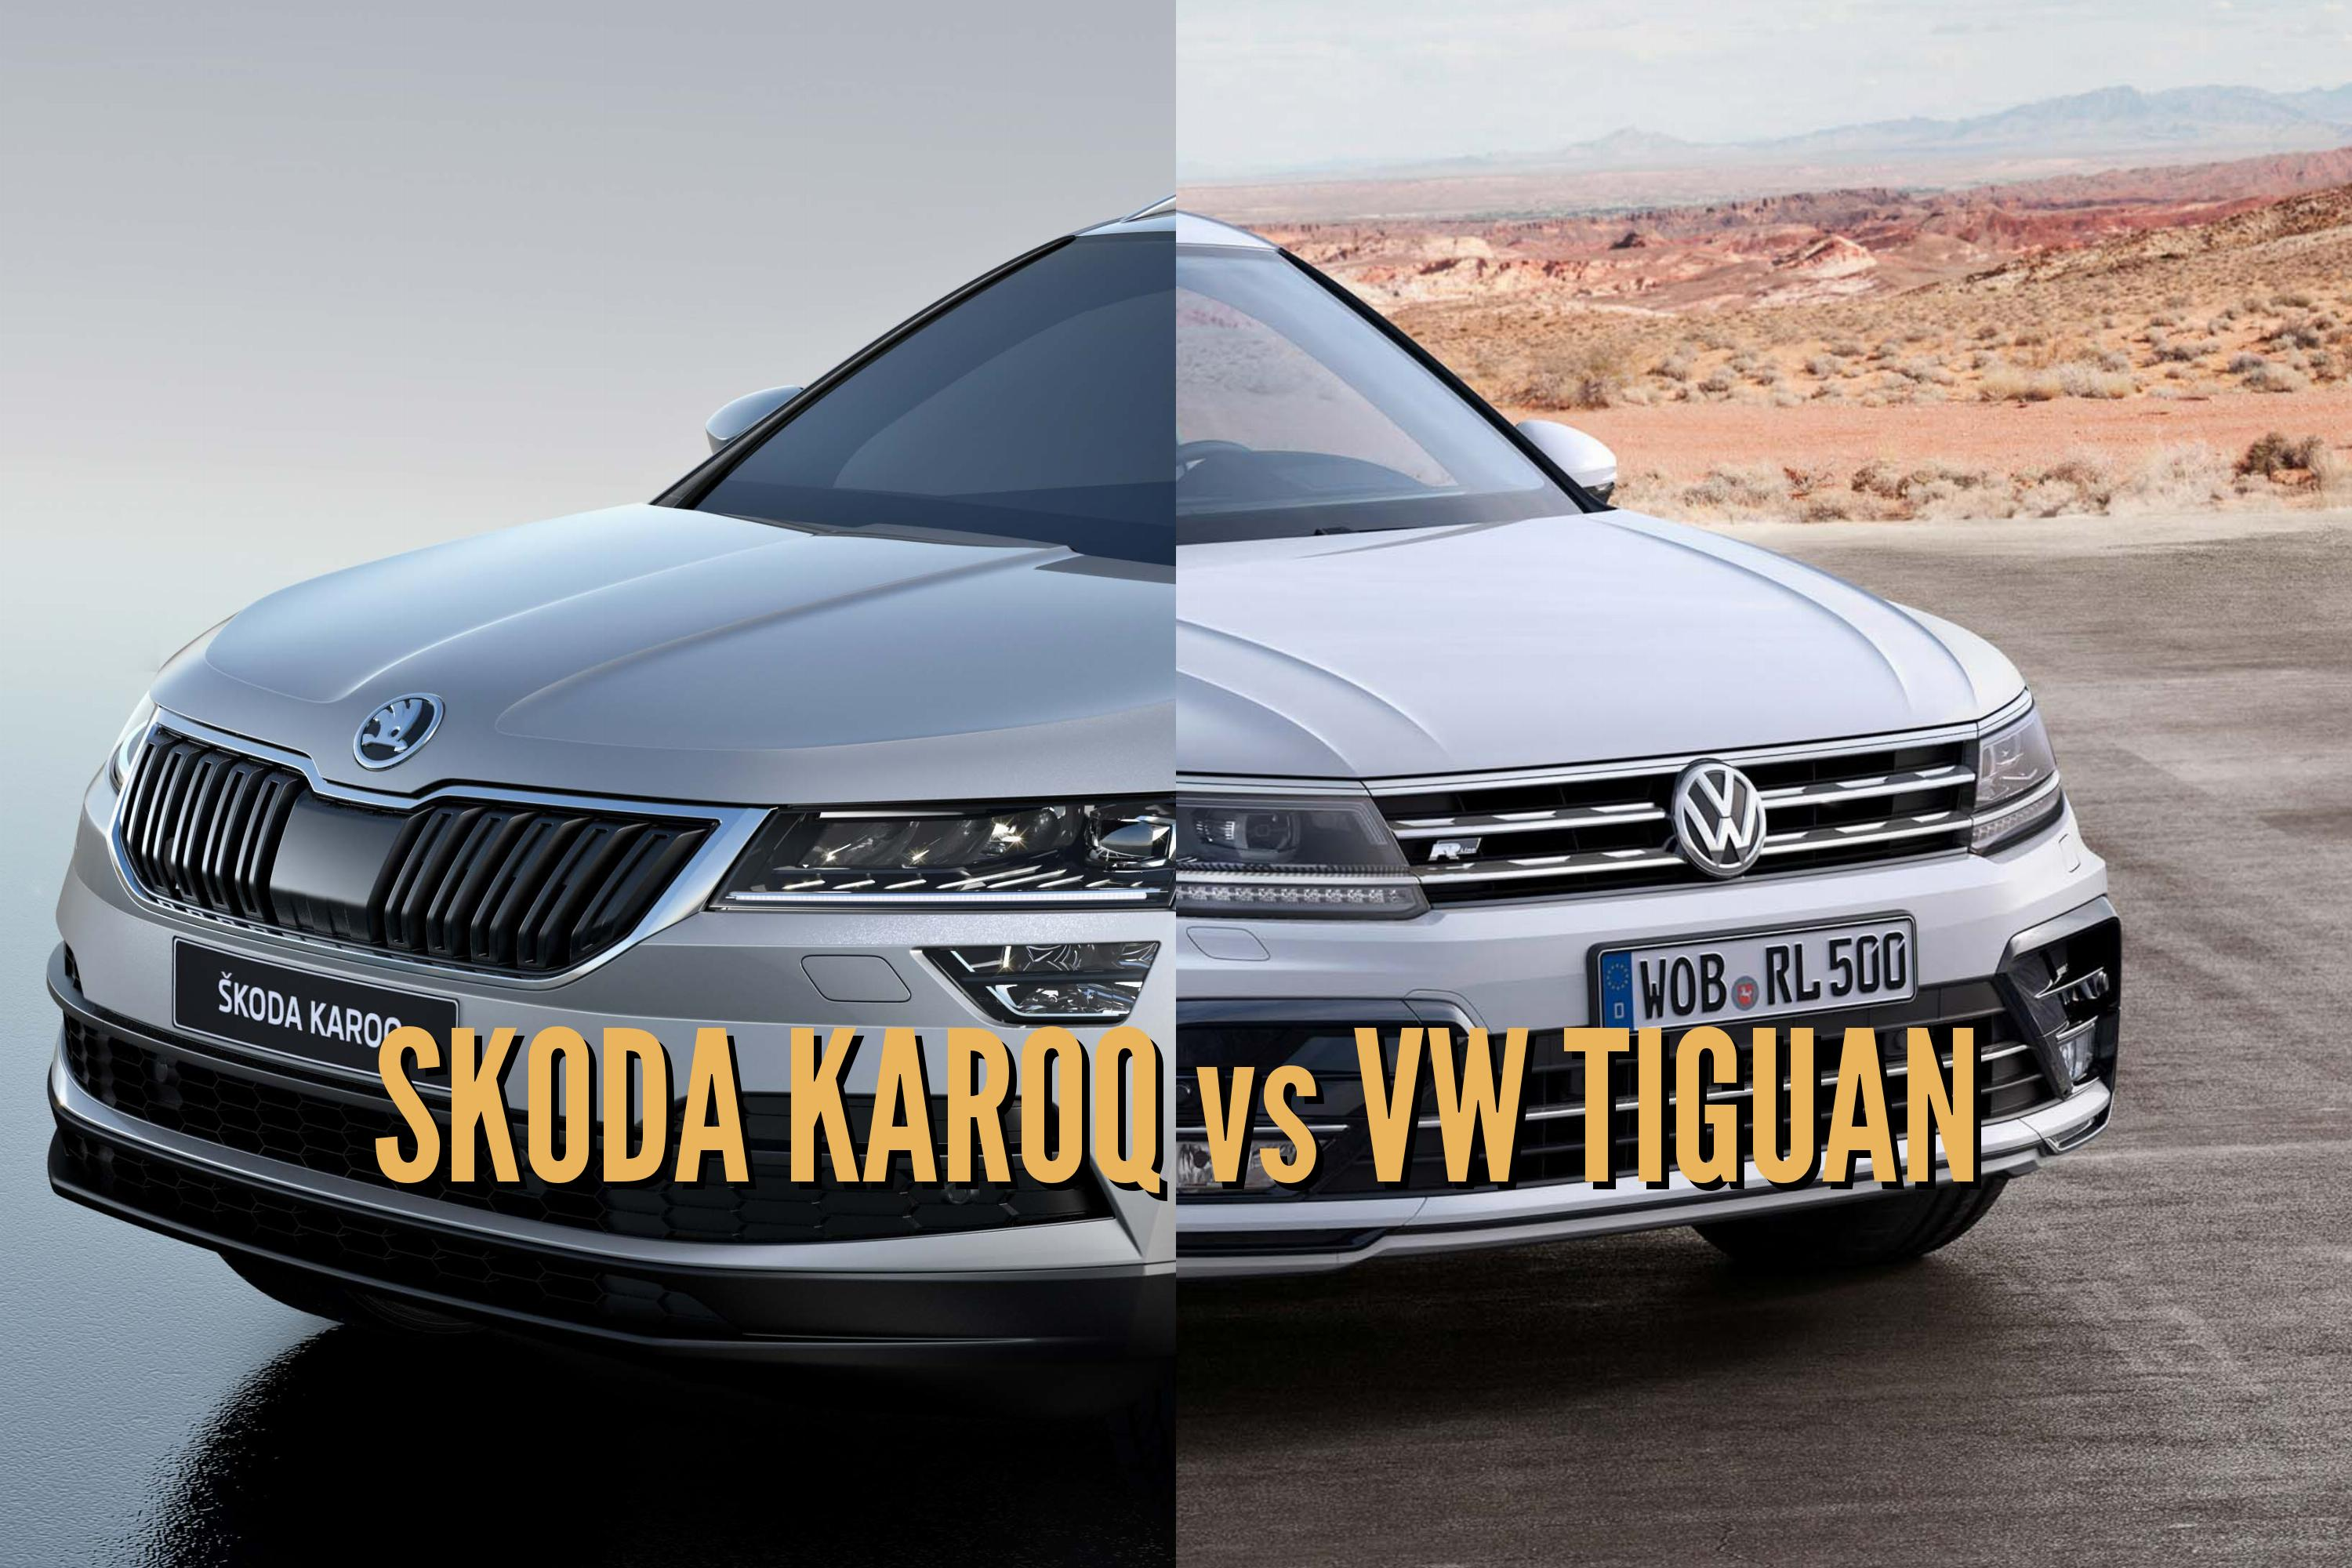 2017 skoda karoq vs volkswagen tiguan differences. Black Bedroom Furniture Sets. Home Design Ideas